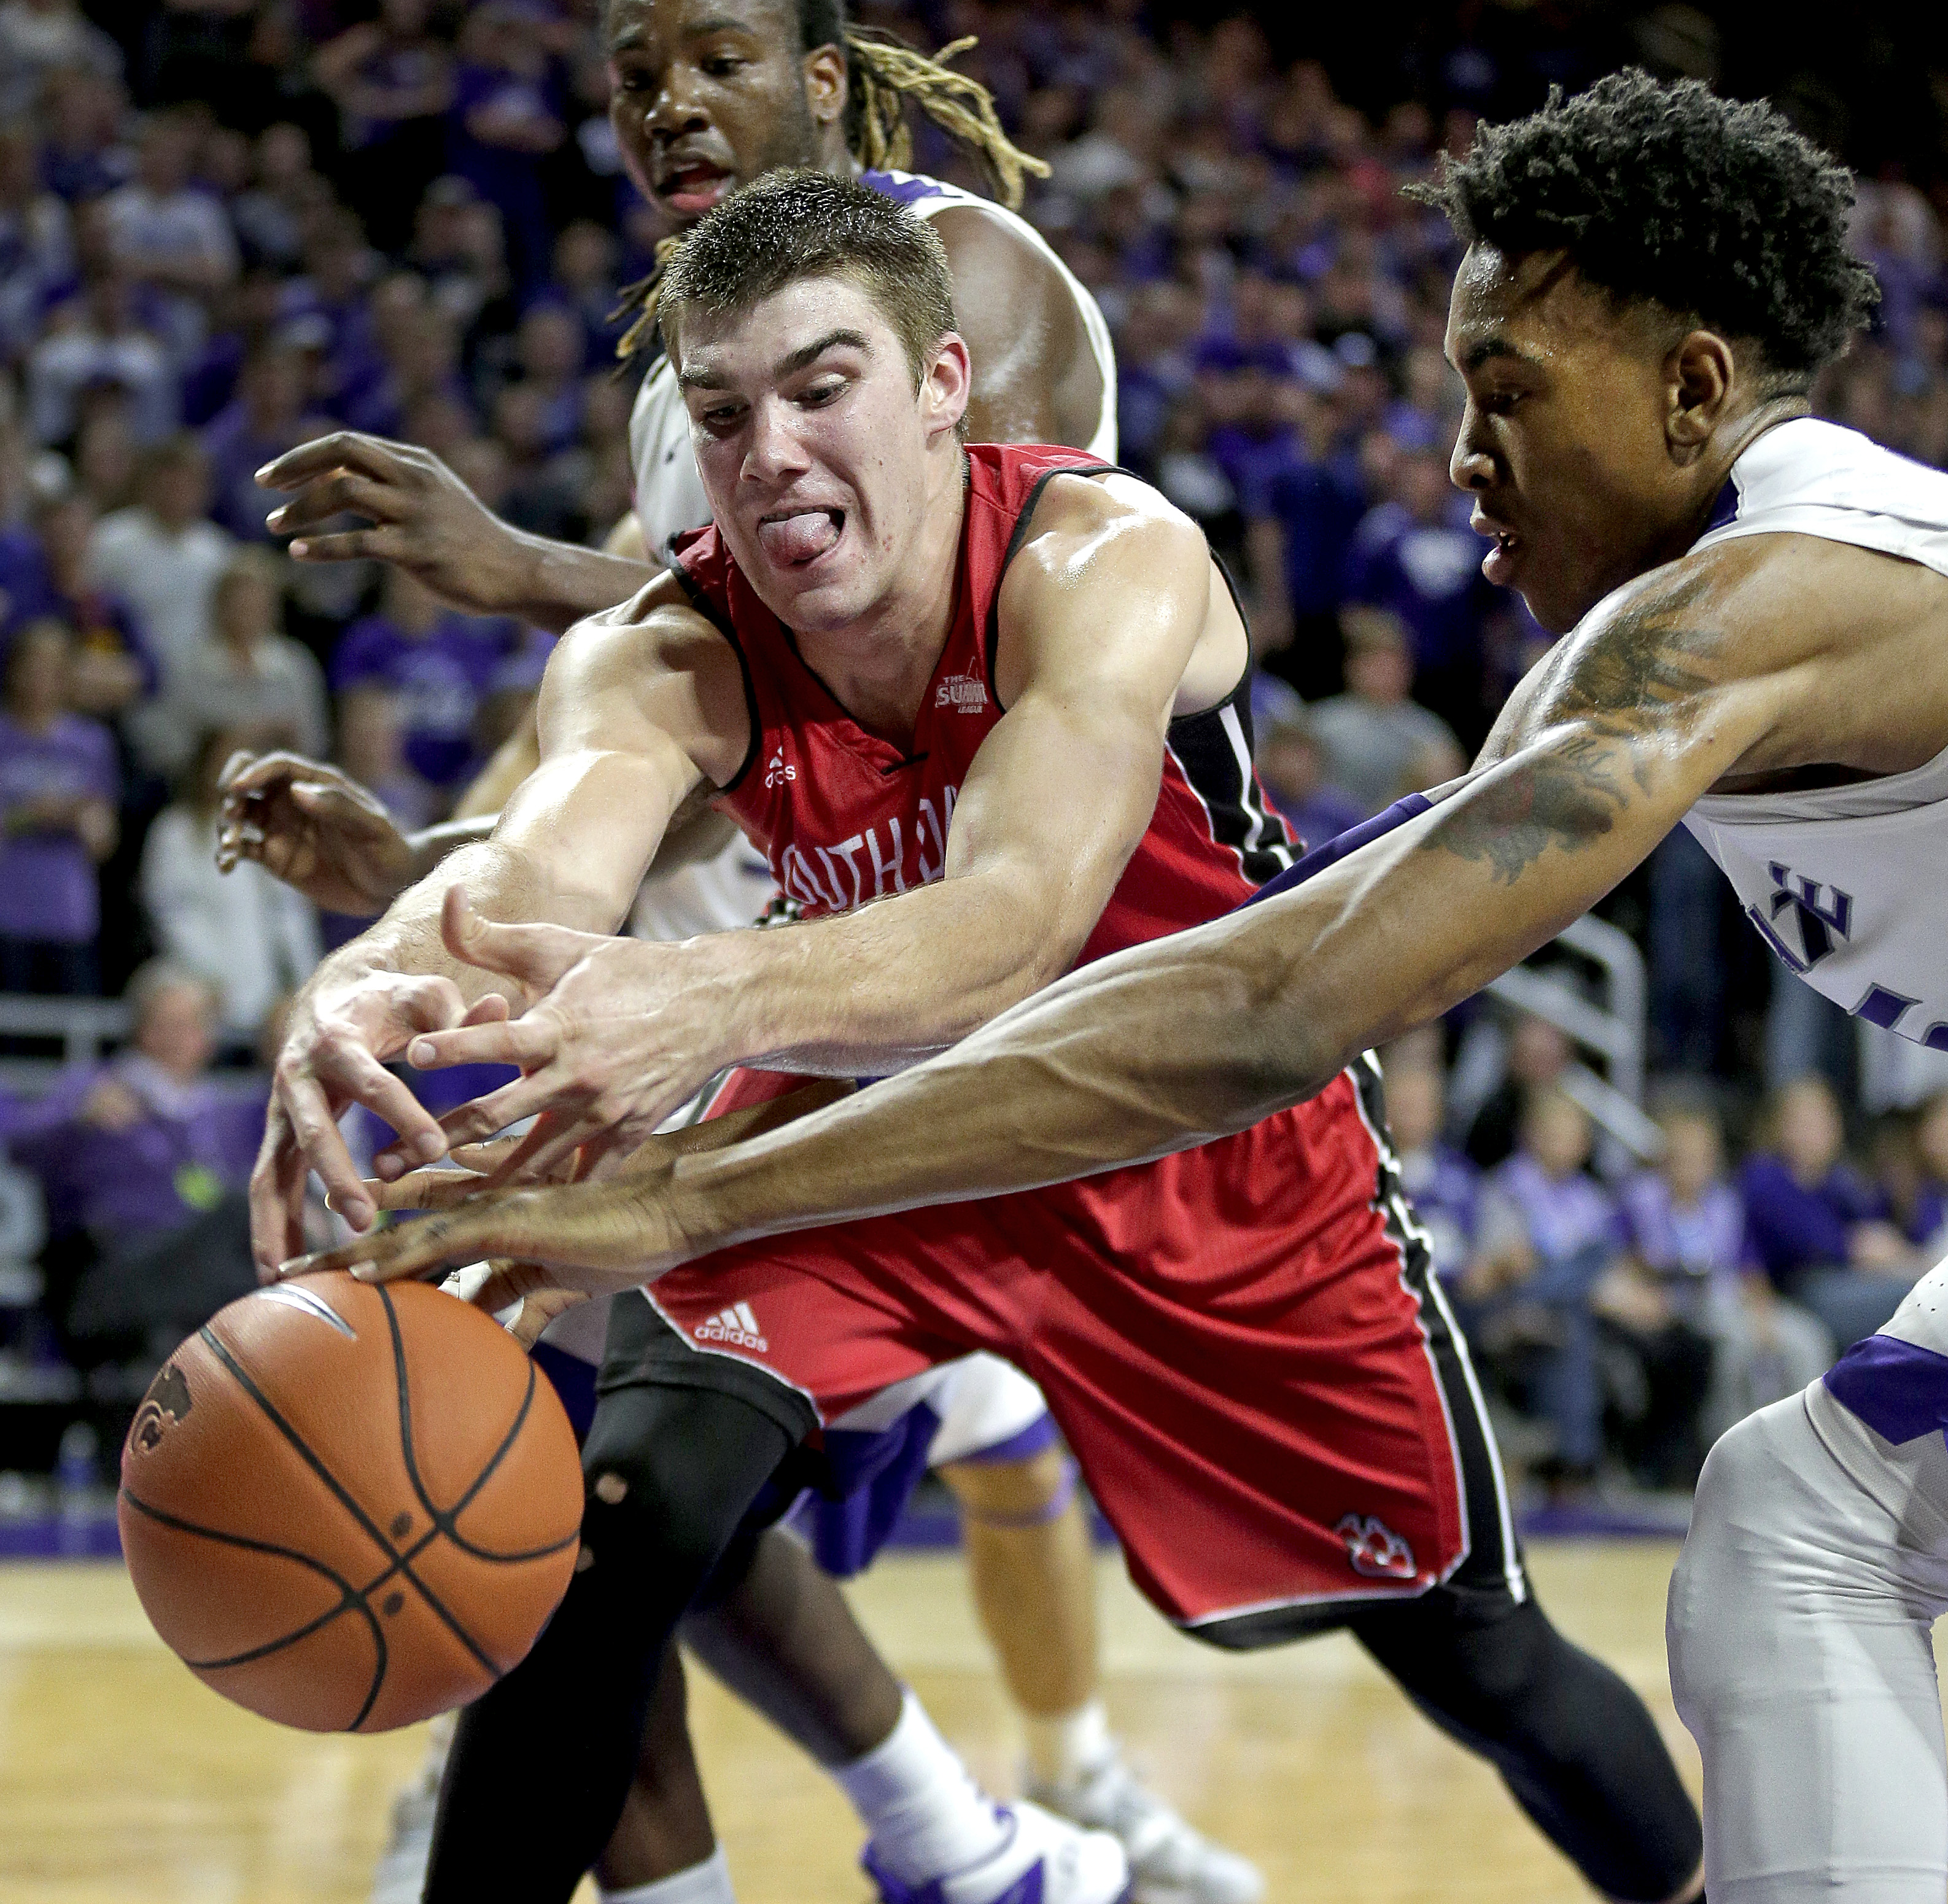 South Dakota's Dan Jech, left, and Kansas State's Wesley Iwundu chase a loose ball during the first half of an NCAA college basketball game Friday, Nov. 20, 2015, in Manhattan, Kan. (AP Photo/Charlie Riedel)